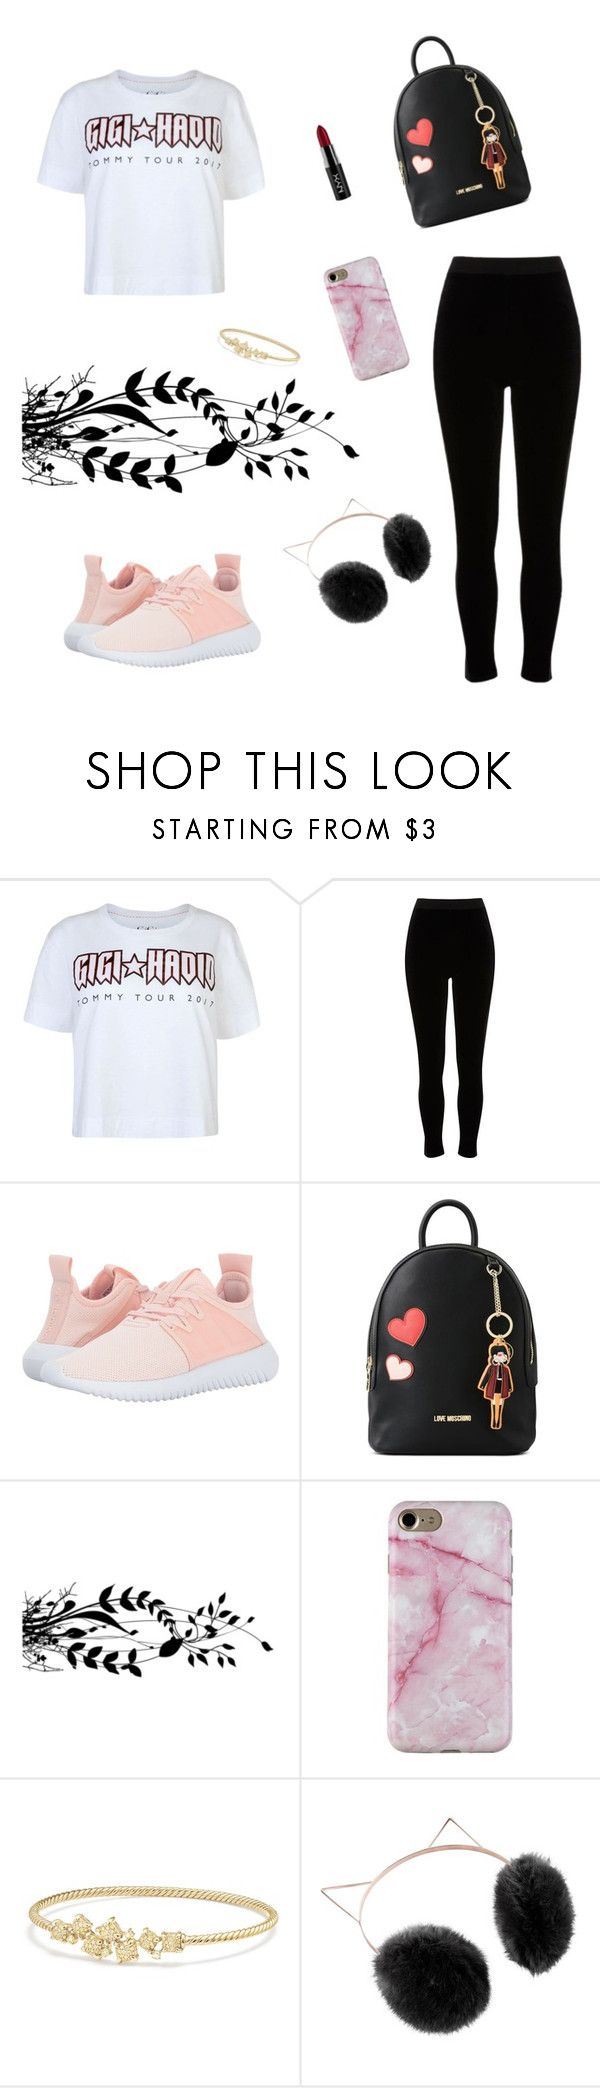 """""""cool"""" by benilounoma ❤ liked on Polyvore featuring Tommy Hilfiger, River Island, adidas Originals, Love Moschino, David Yurman, LC Lauren Conrad and NYX"""